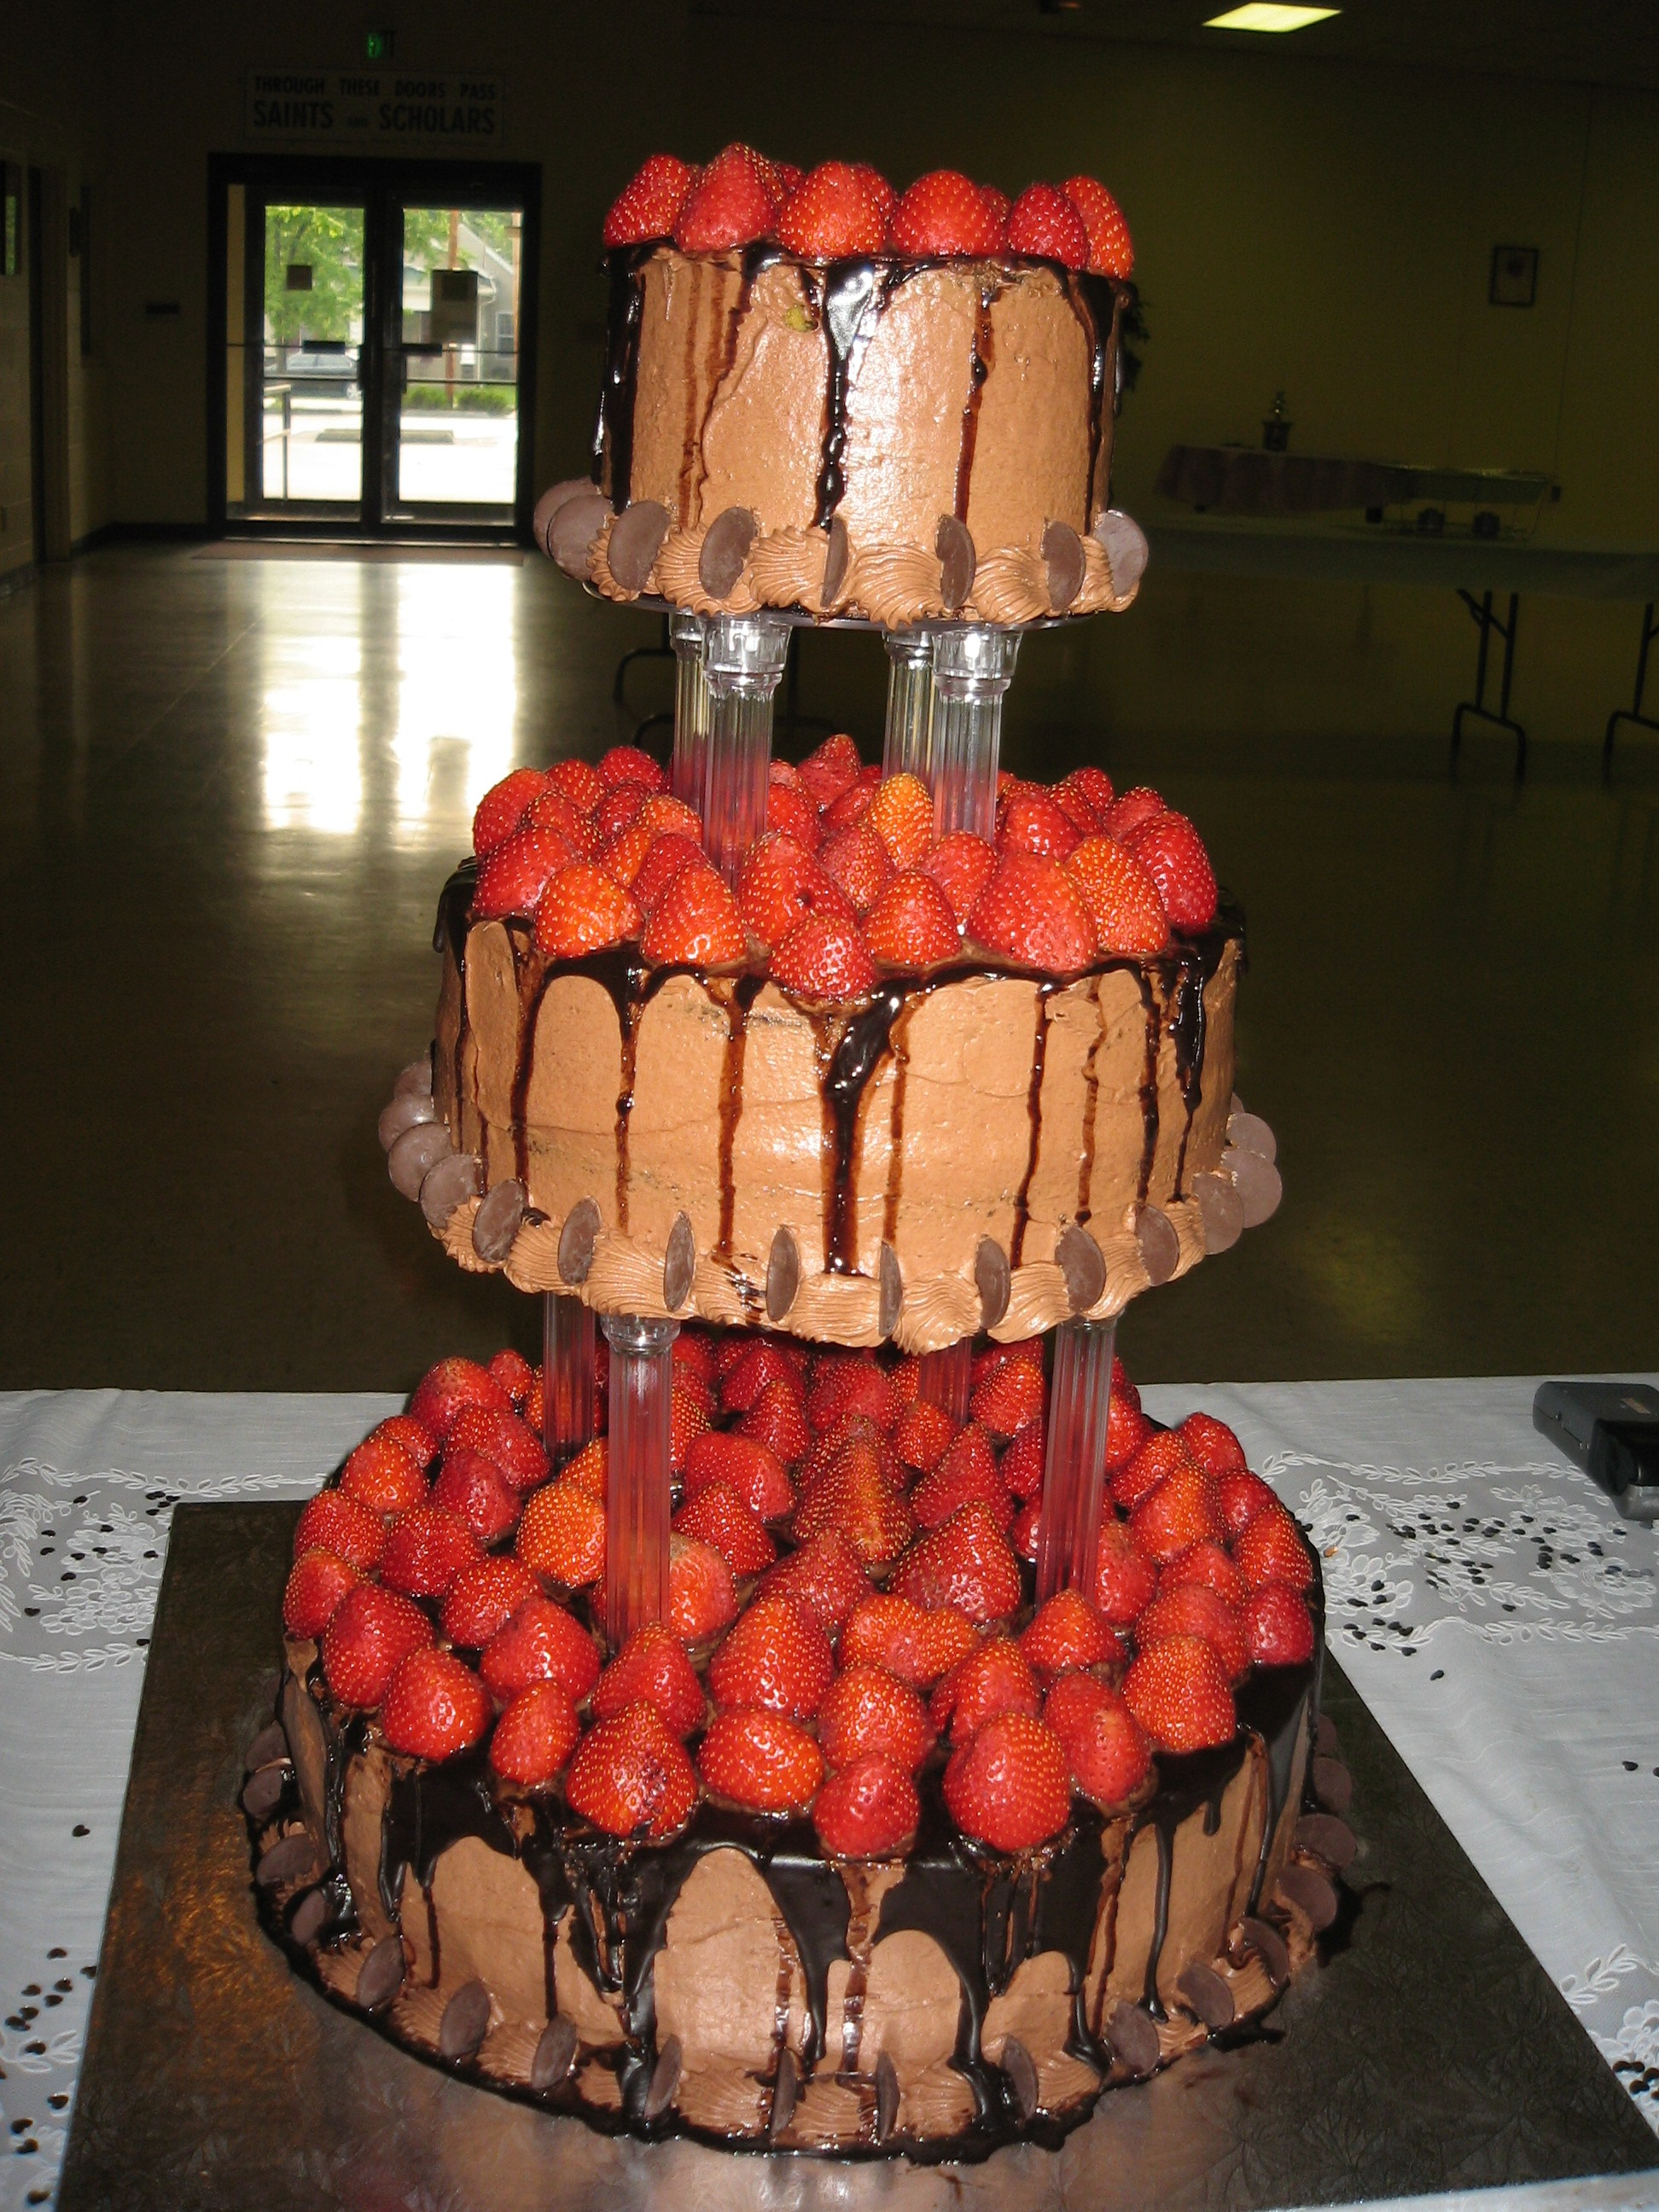 3-Tier Floating Chocolate Round with Strawberries